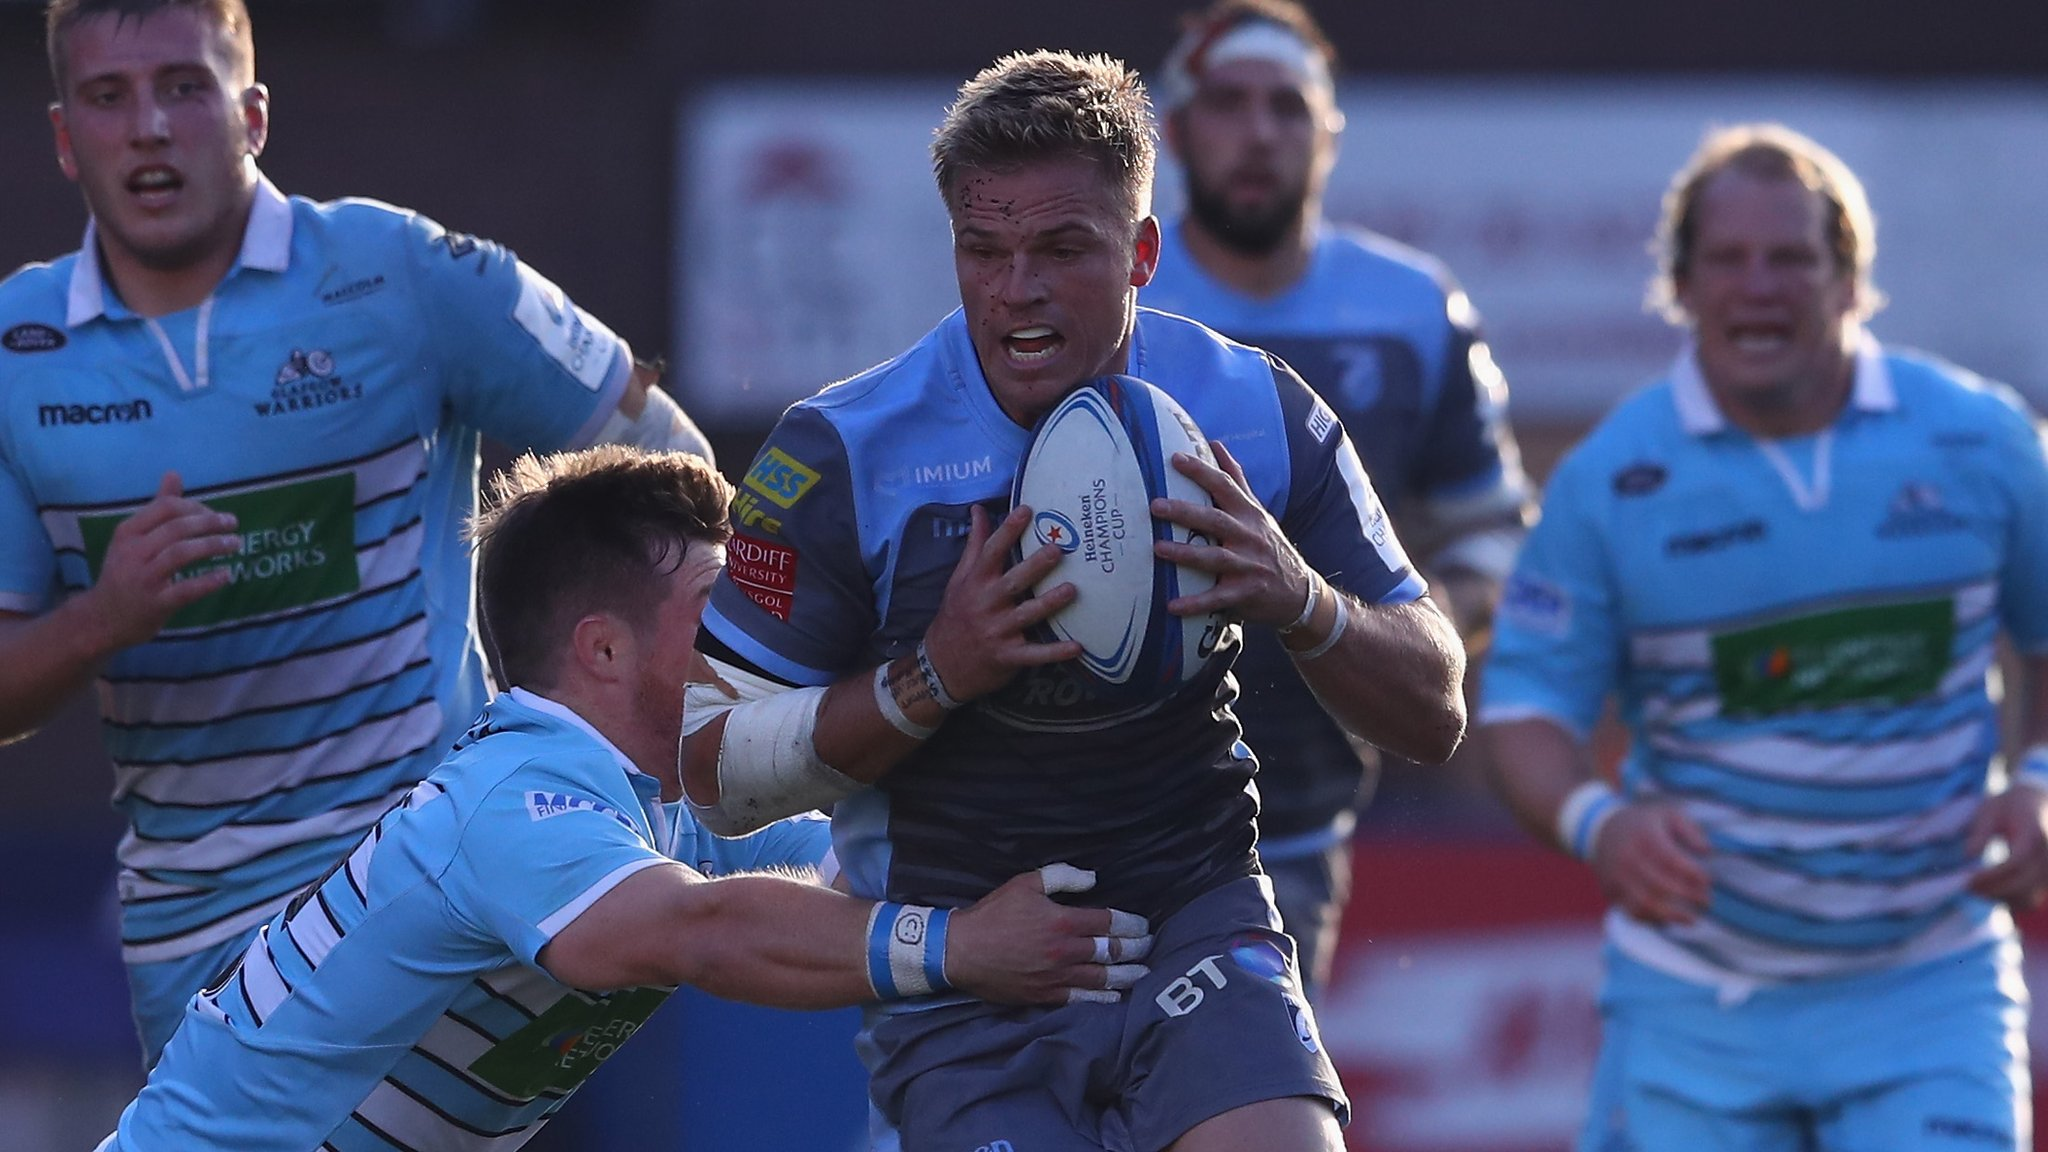 Cardiff-Glasgow kit clash an 'out-and-out disgrace' - Gareth Anscombe